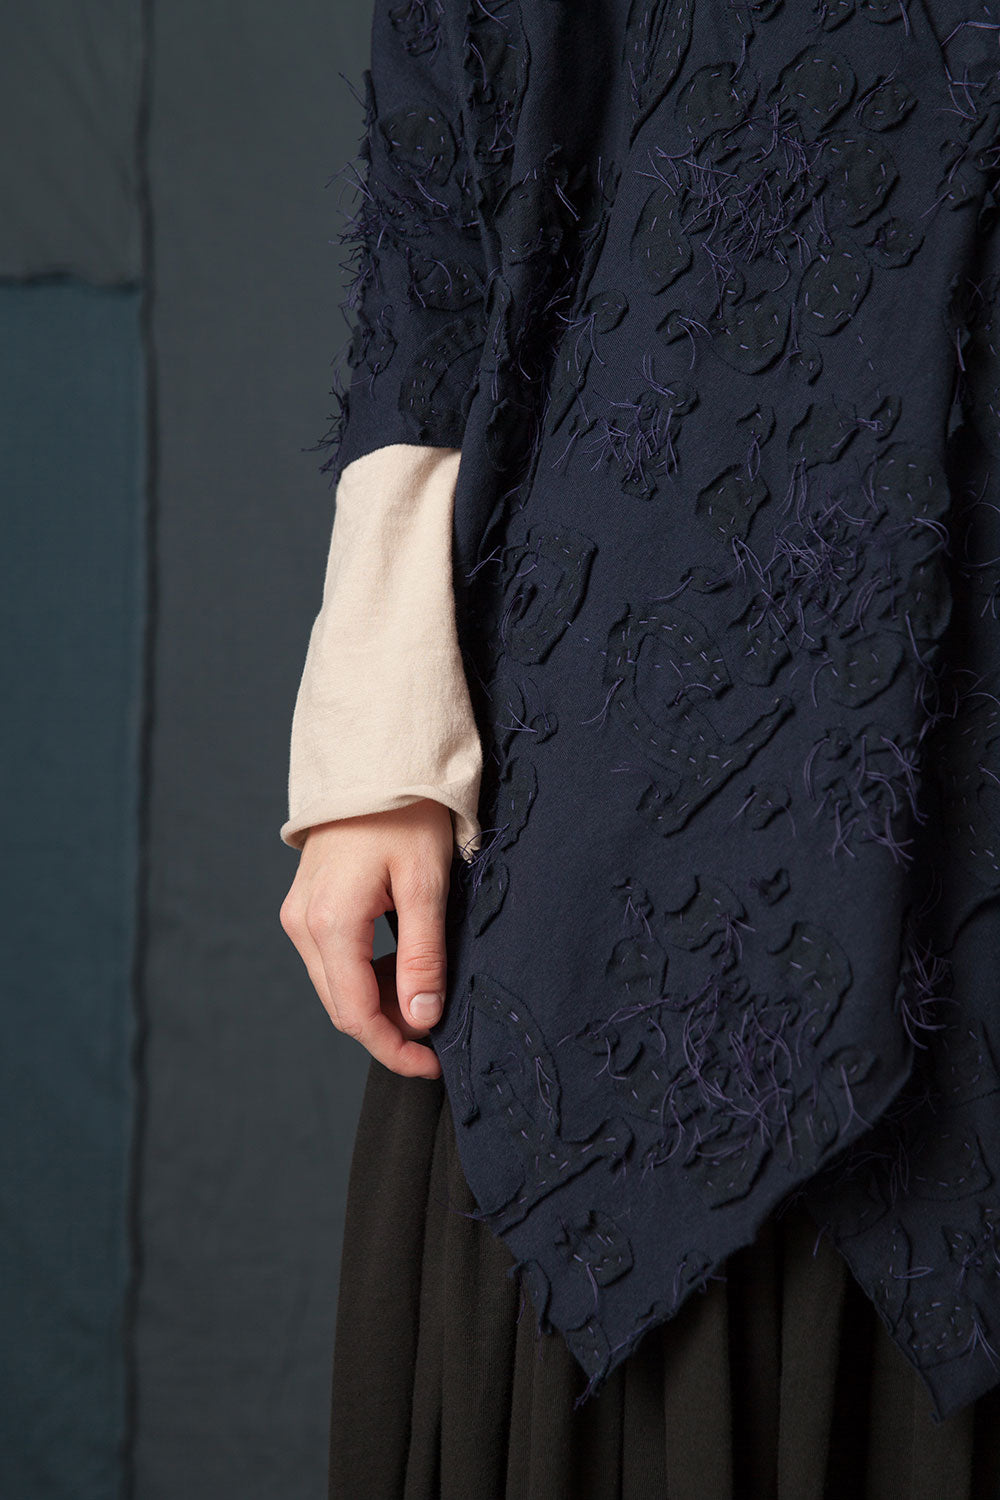 The School of Making Daisy Stencil in Negative Reverse on coat in Navy on Navy colorway